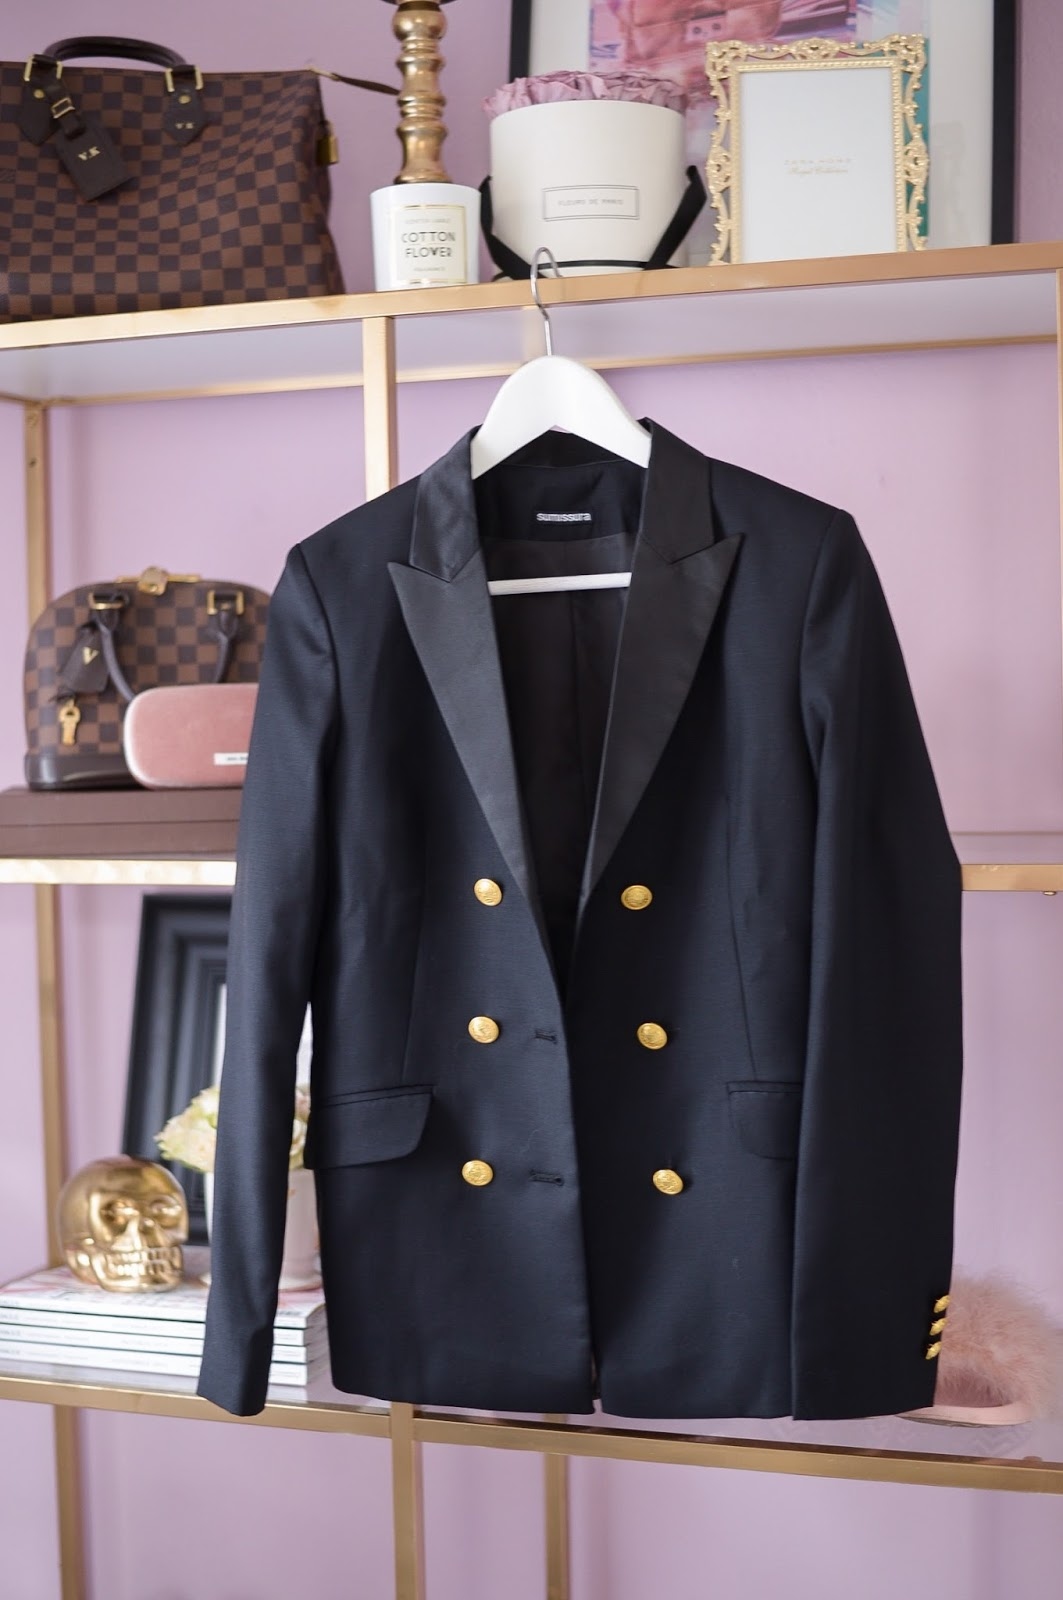 balmain lookalike blazer_sumissura_balmain inspired blazer for less